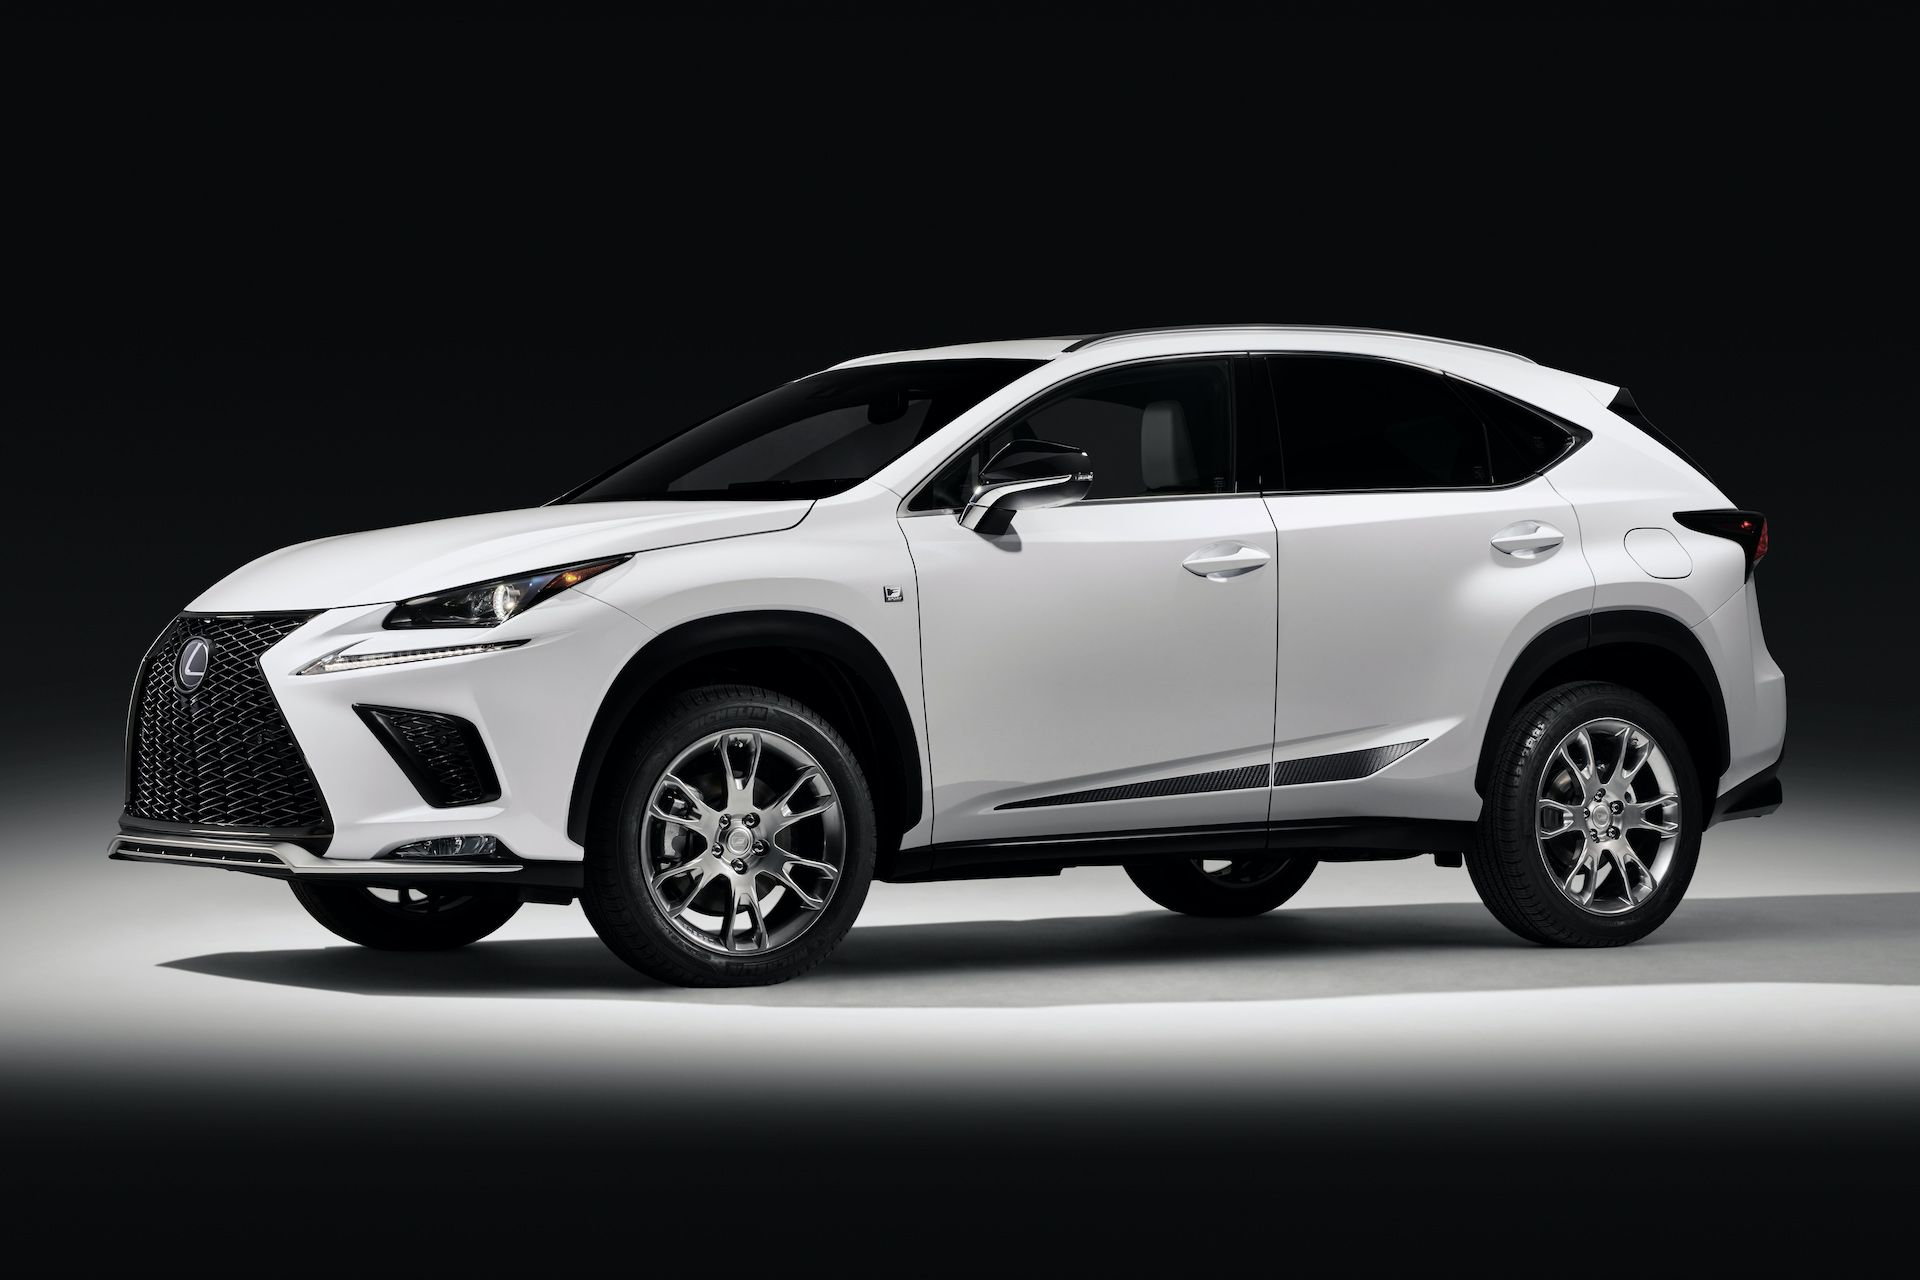 2020 Lexus Hybrid Suv Review Charging Range Performance In 2020 Lexus Suv Lexus Lineup Lexus Cars